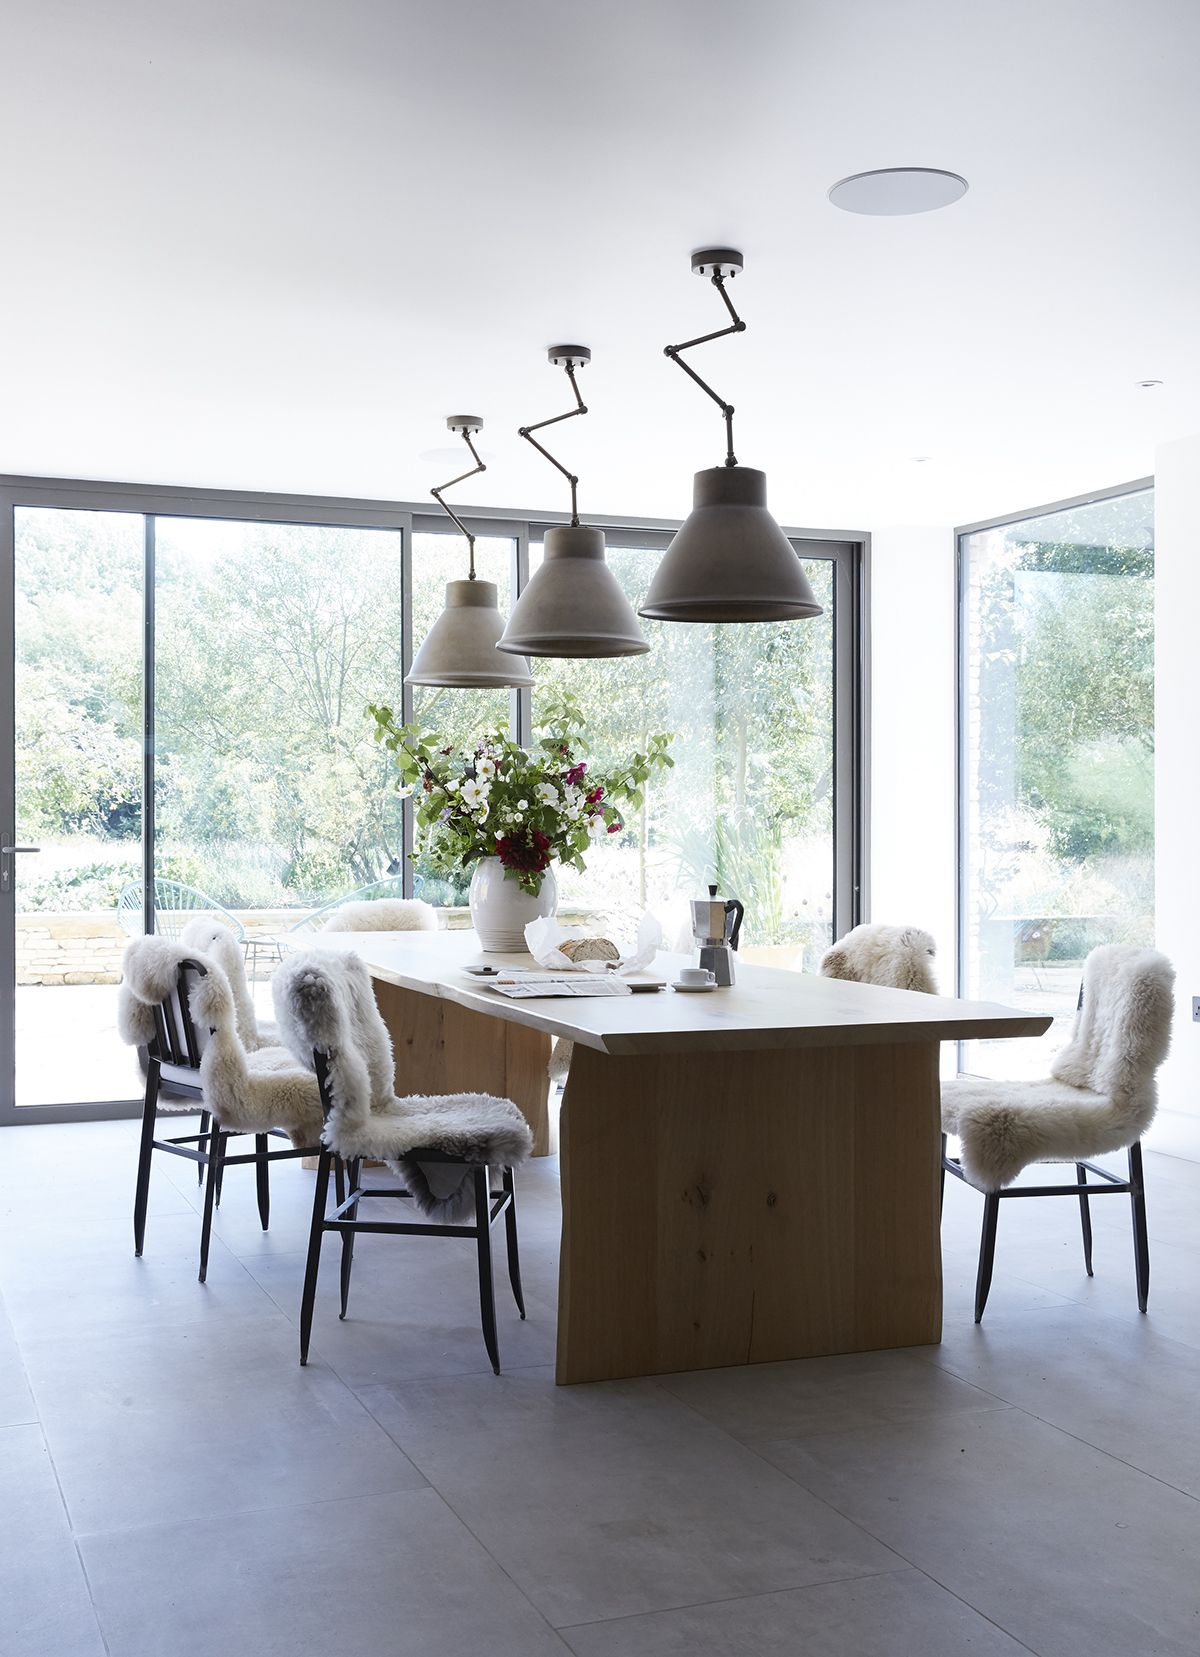 Scandi Cool House: A Transformed 17th-century mill in ...